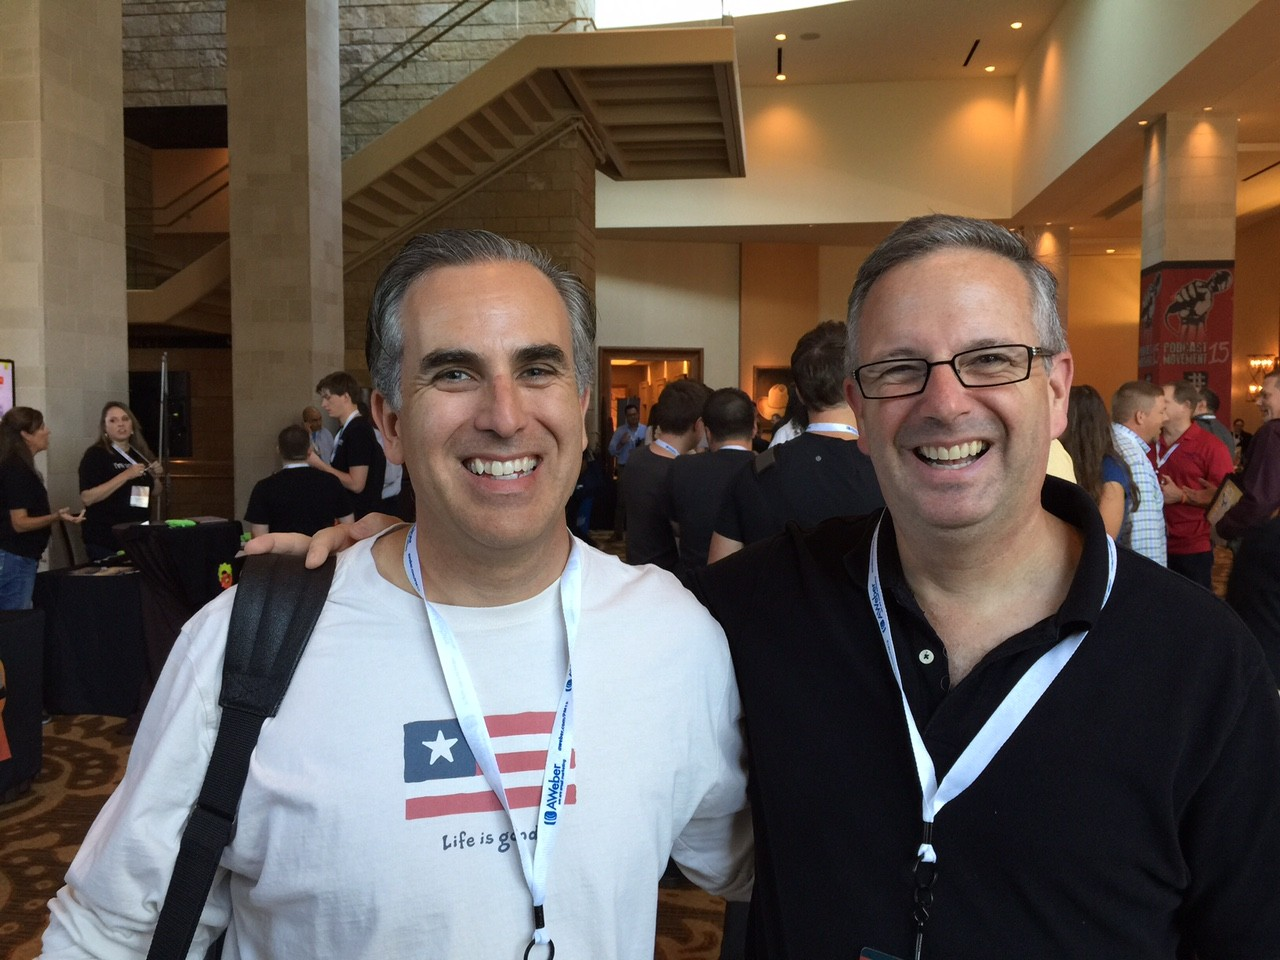 Tom with Michael Stelzner host of the Social Media Examiner Show